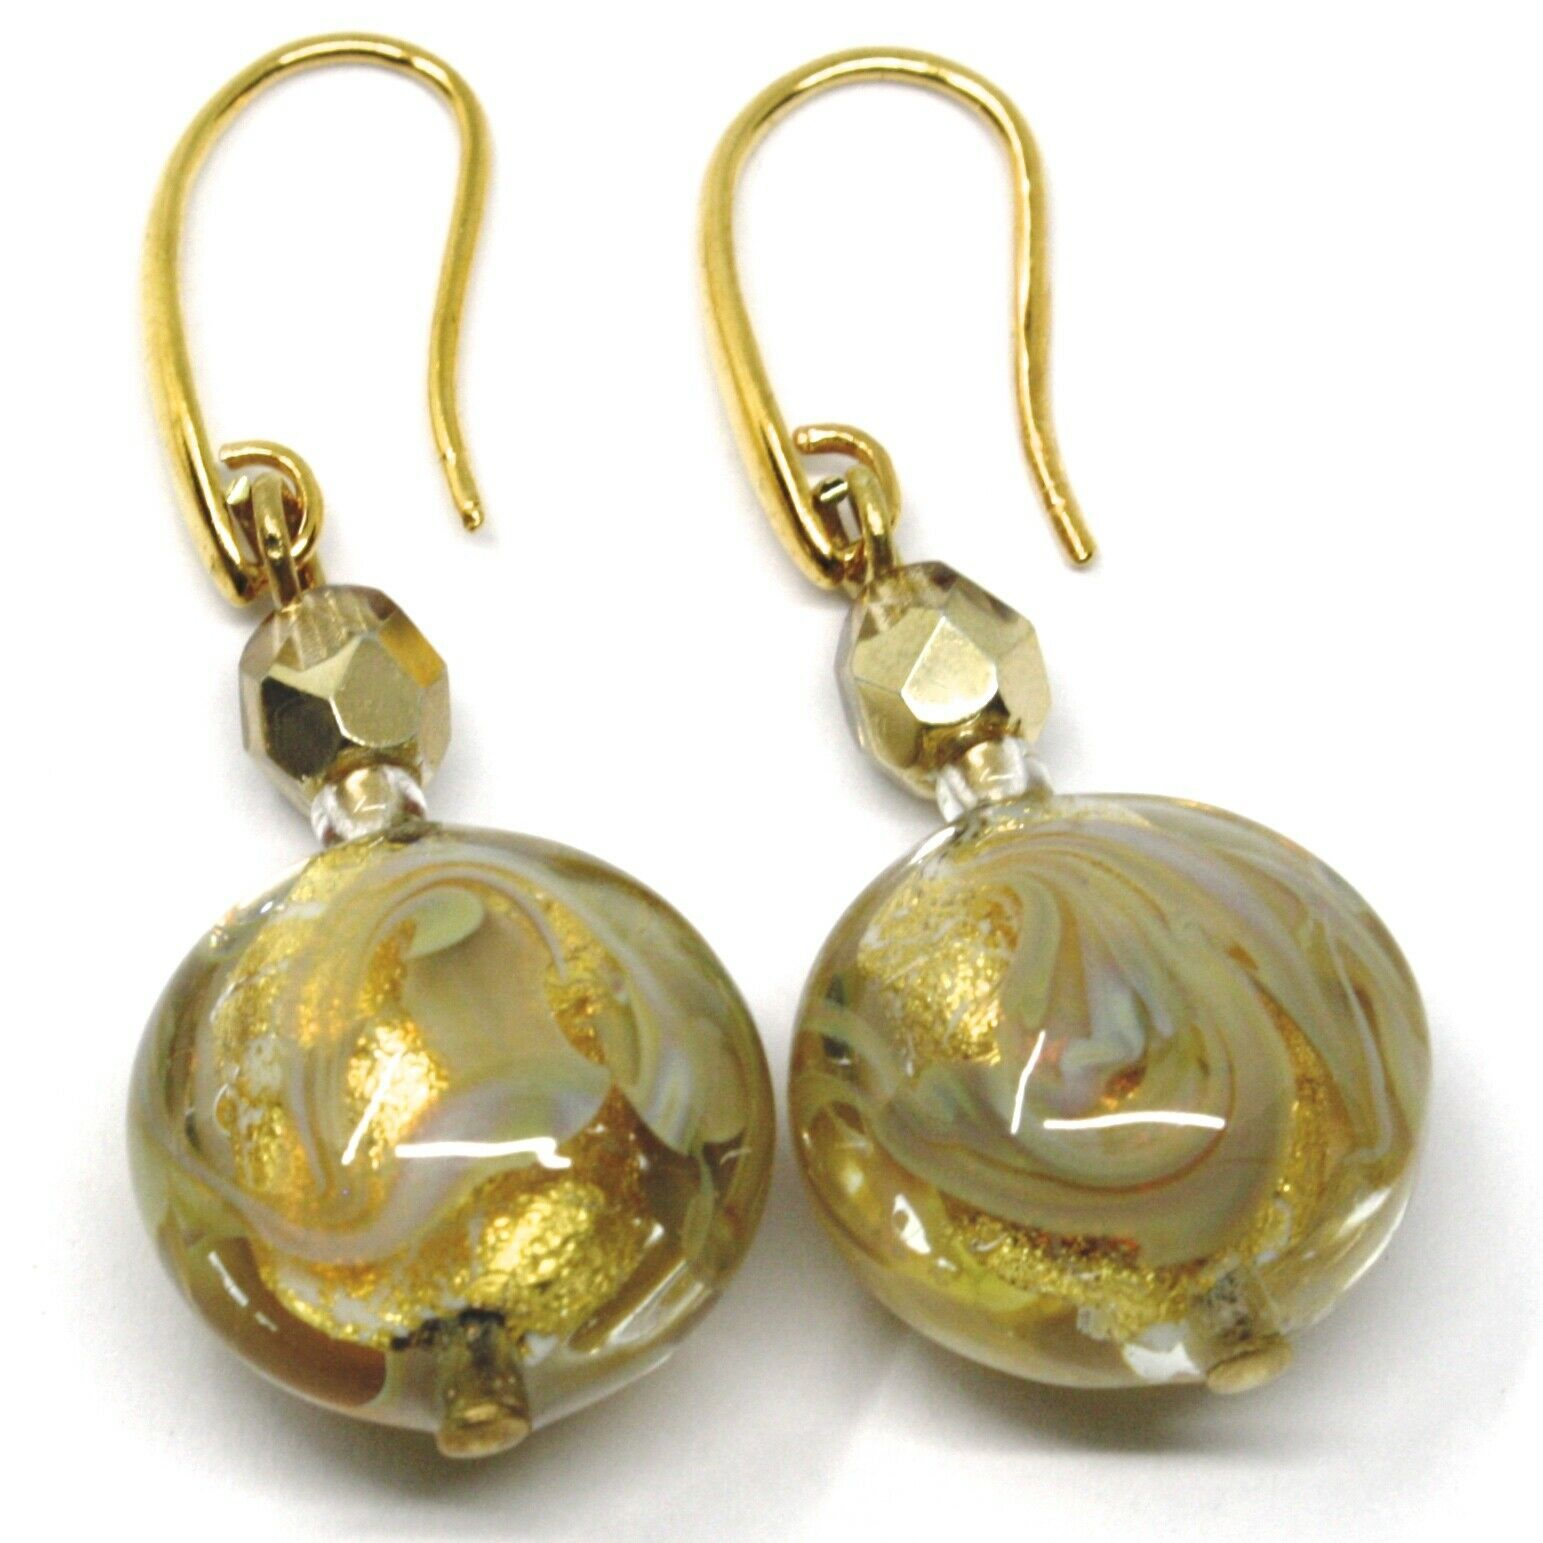 PENDANT HOOK EARRINGS YELLOW DISC MURANO GLASS GOLD LEAF MADE IN ITALY